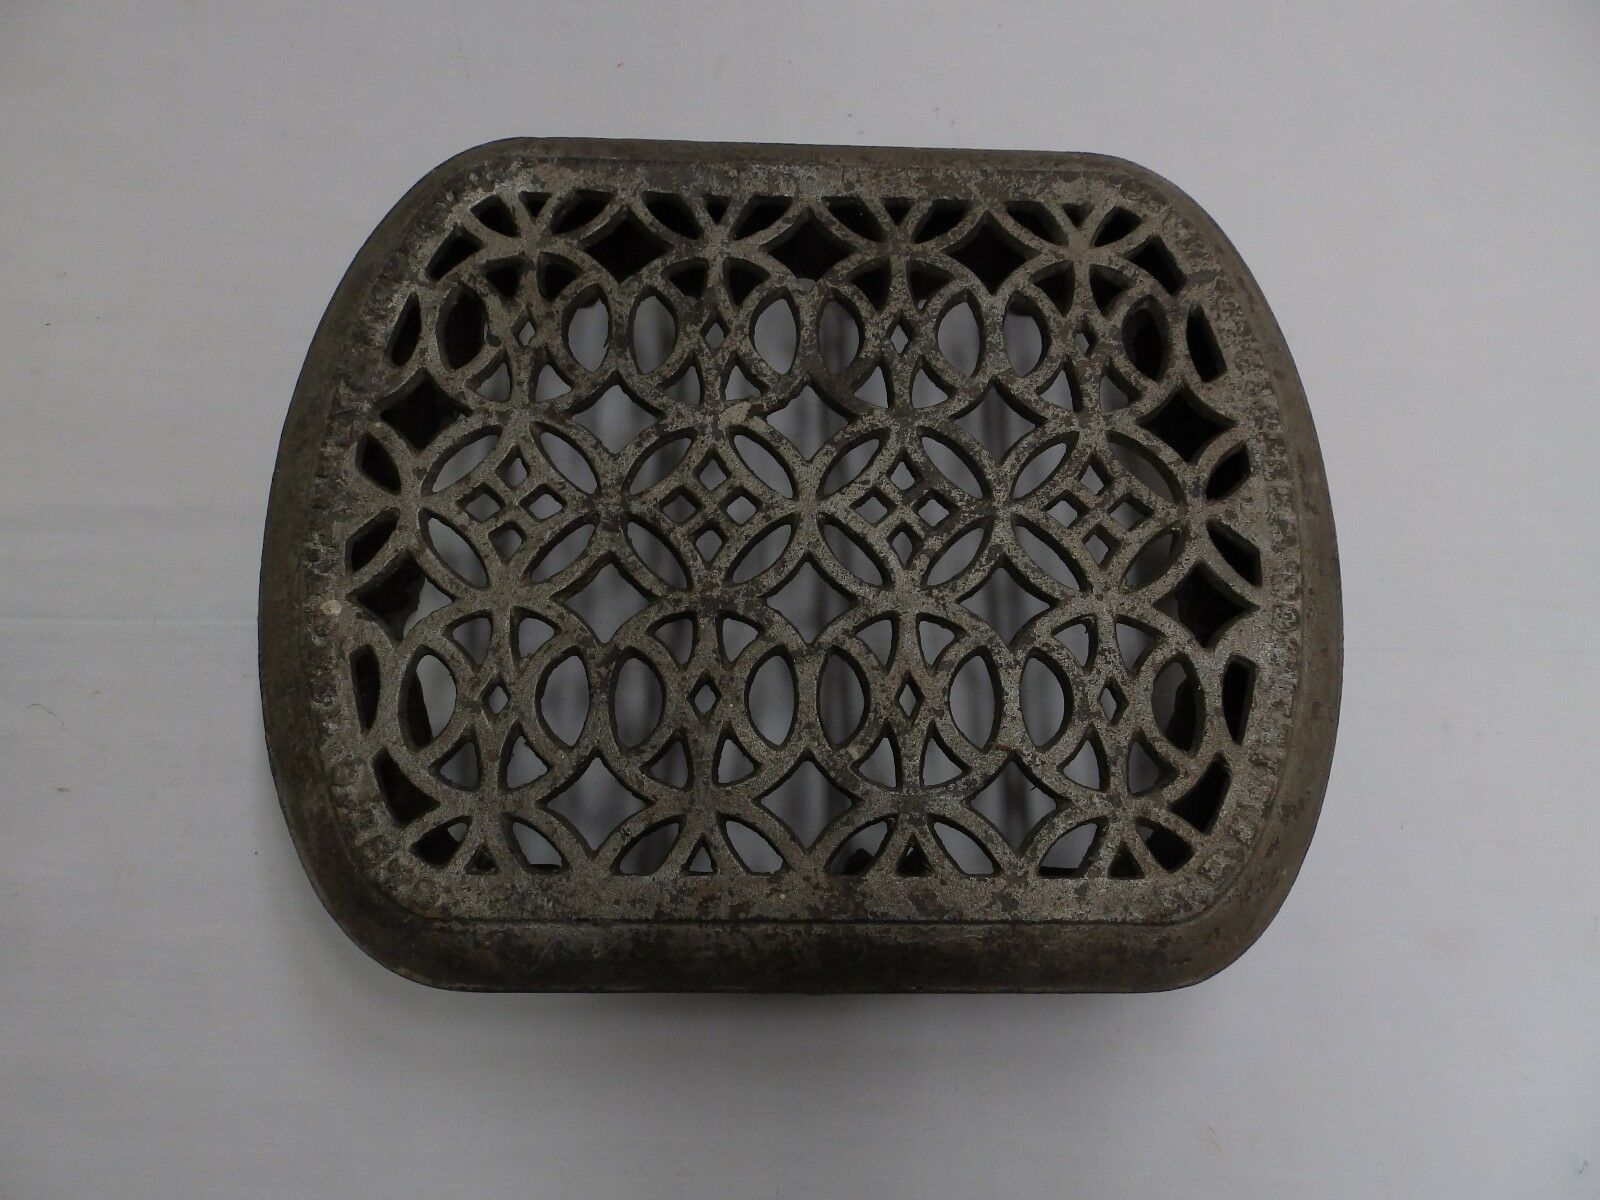 Small  Antique Cast Iron Radiator Cover Decorative Old Vintage Hardware 4920-15